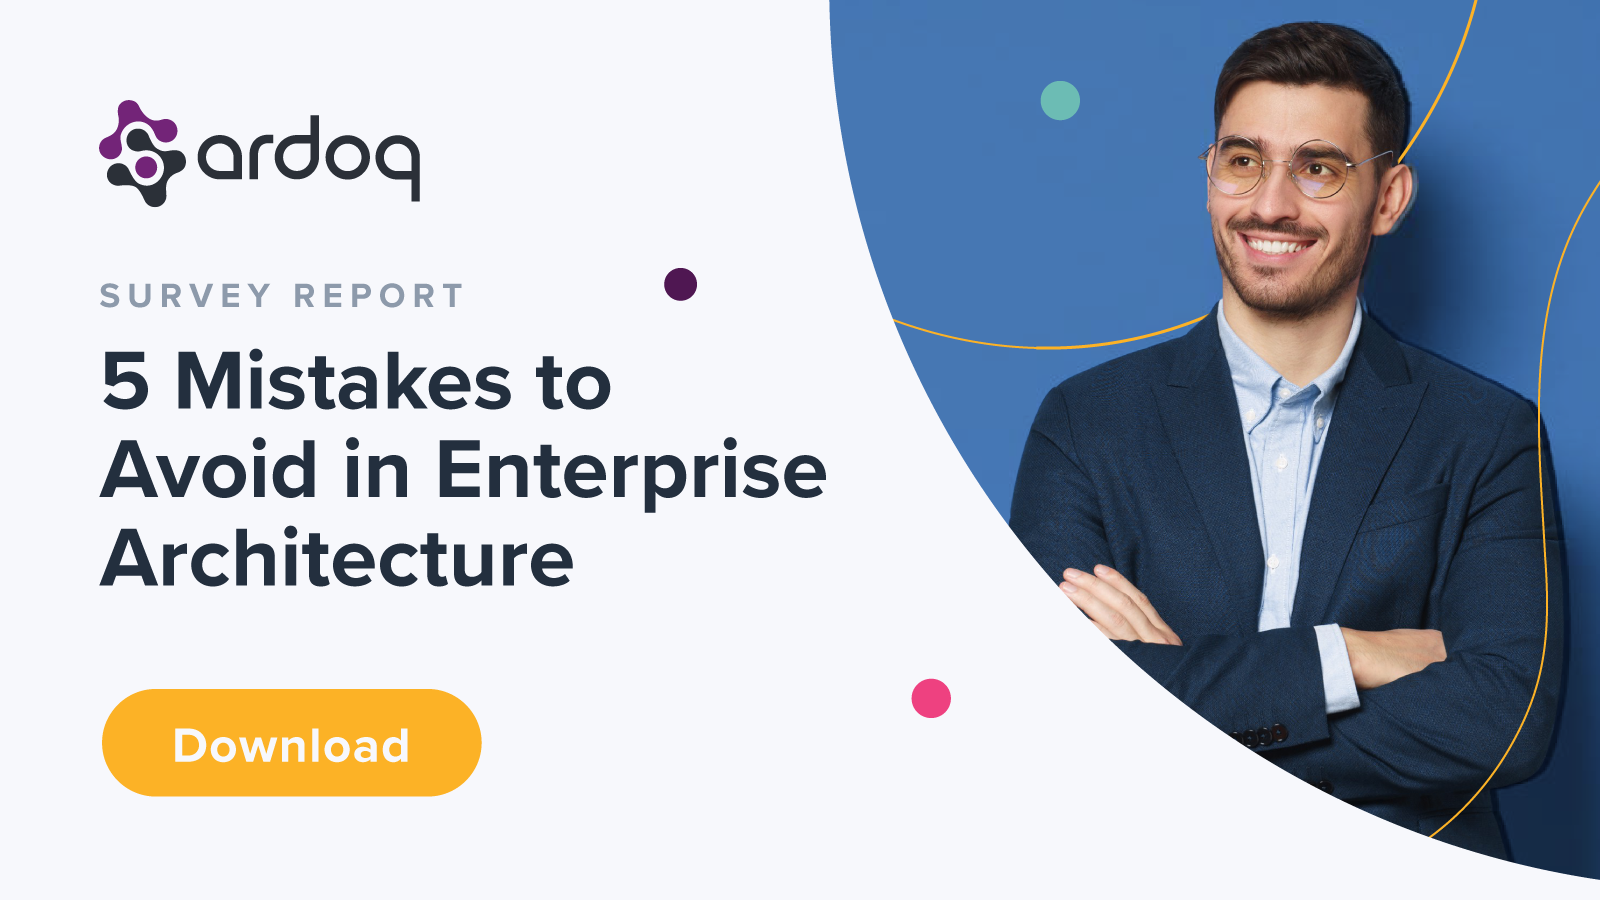 5 mistakes to avoid in enterprise architecture